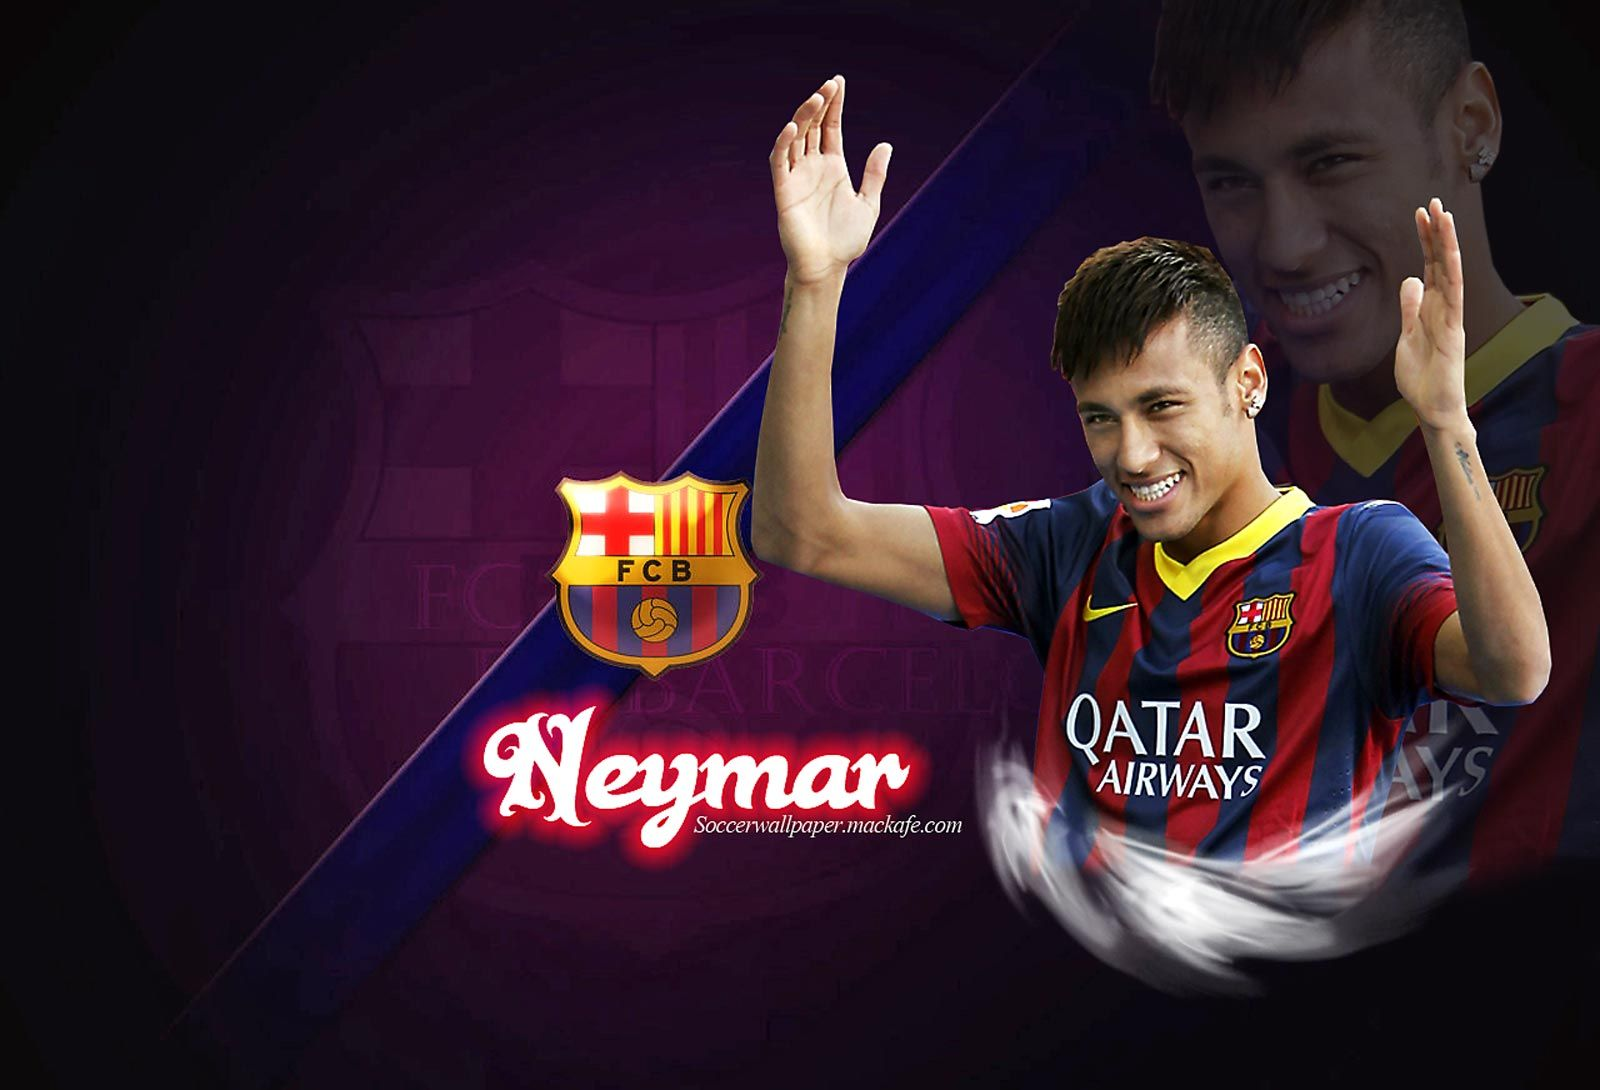 Neymar barcelona fc high resolution wallpapers httpwallucky search results for neymar wallpaper 2013 barca adorable wallpapers voltagebd Images